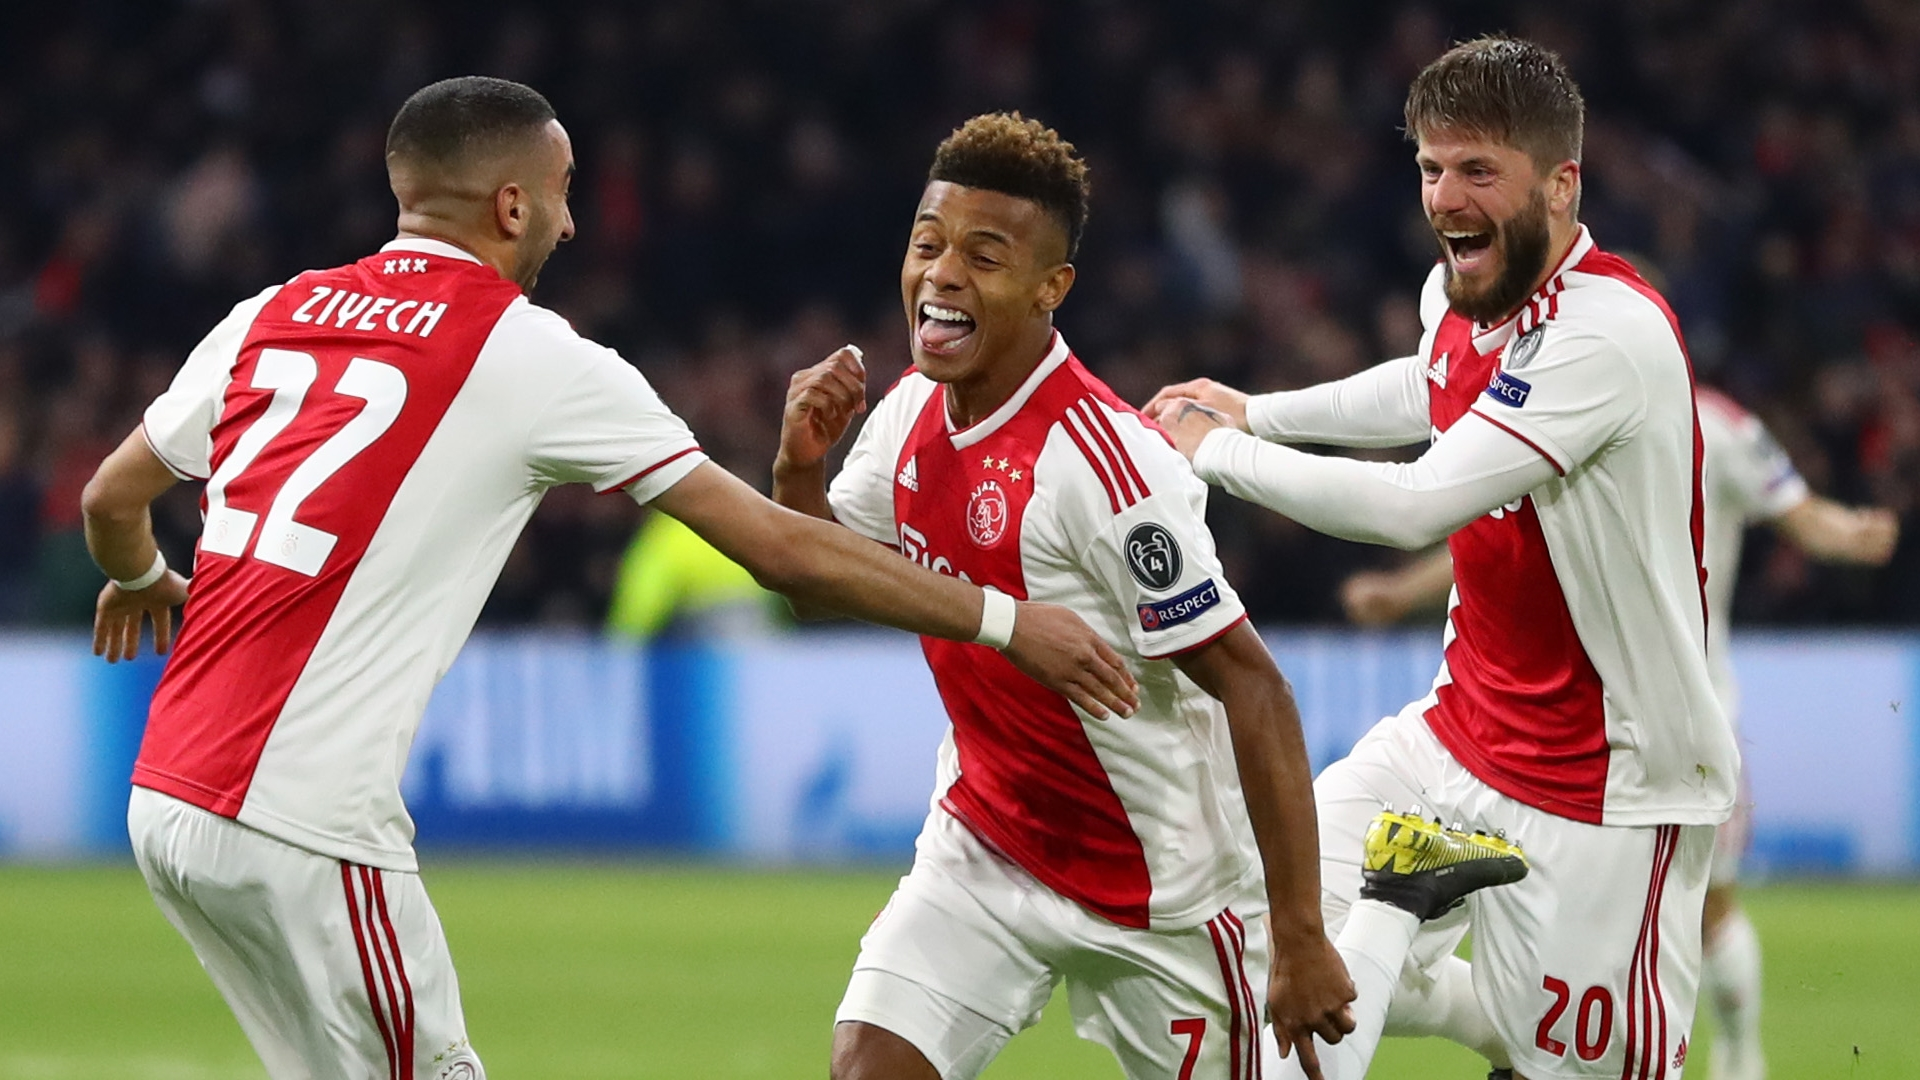 David Neres, Ajax vs Juventus, UCL 2018-19